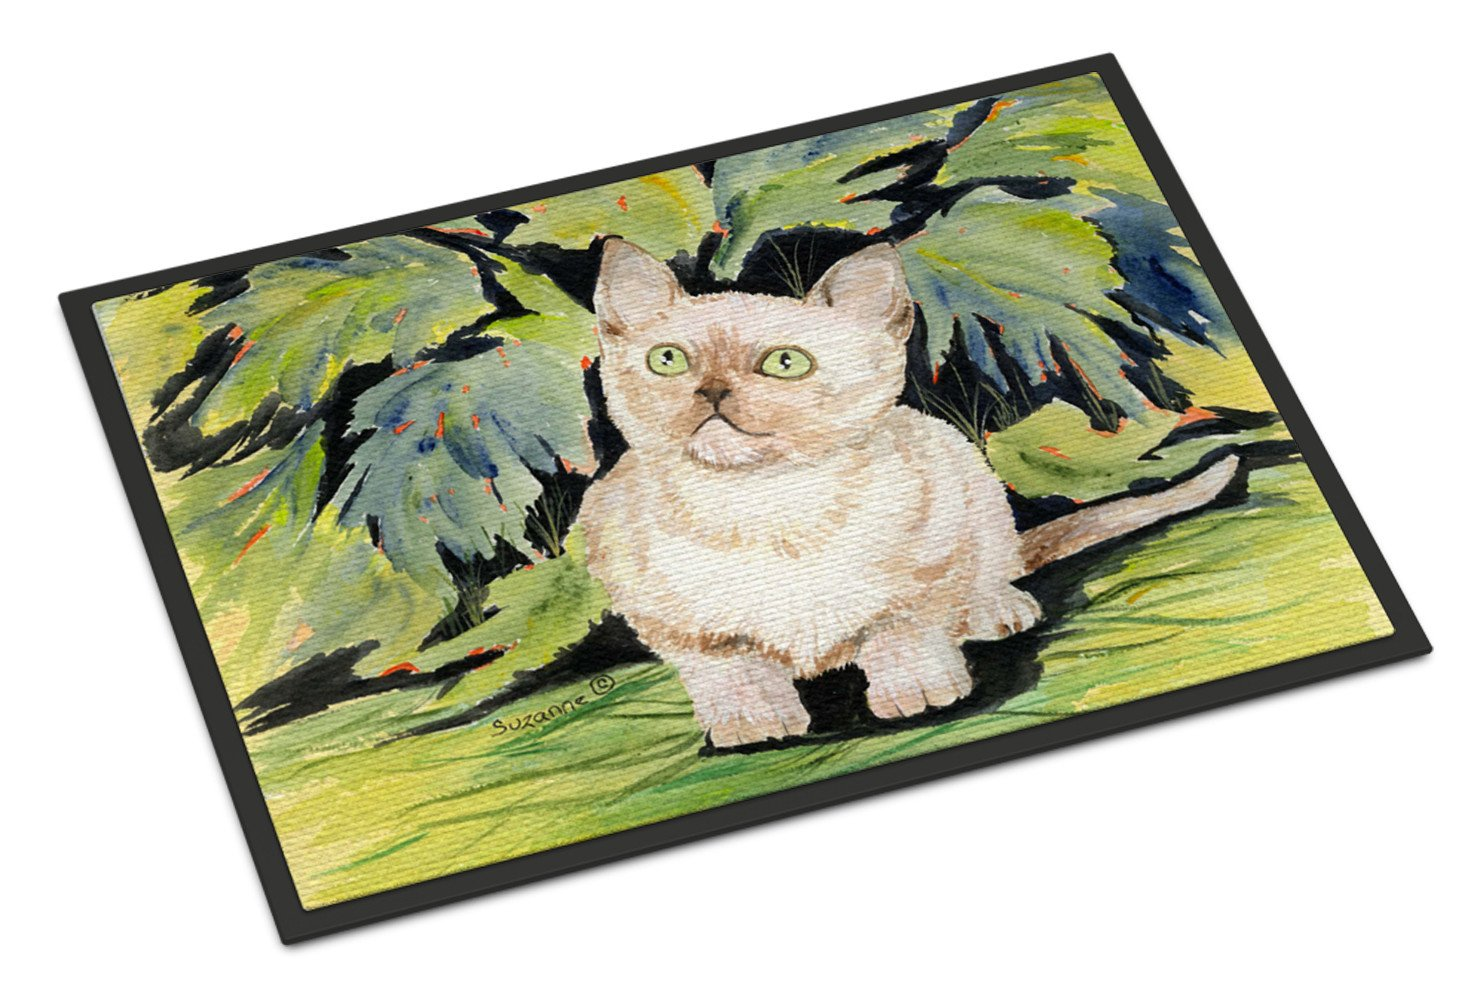 Cat - Burmese Indoor or Outdoor Mat 18x27 Doormat - the-store.com